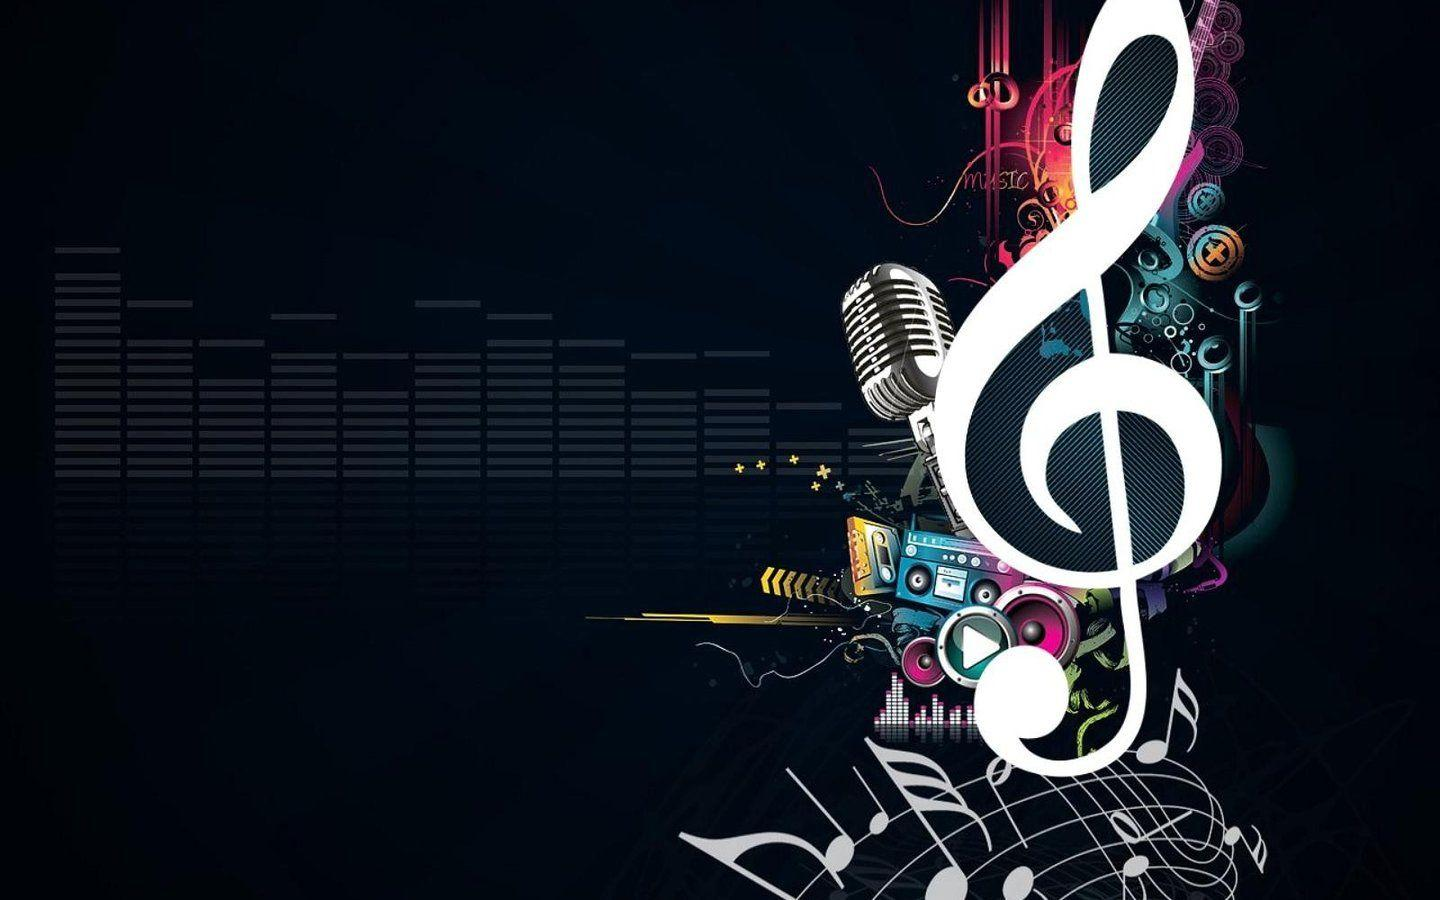 Music Abstract Backgrounds Wallpaper Cave